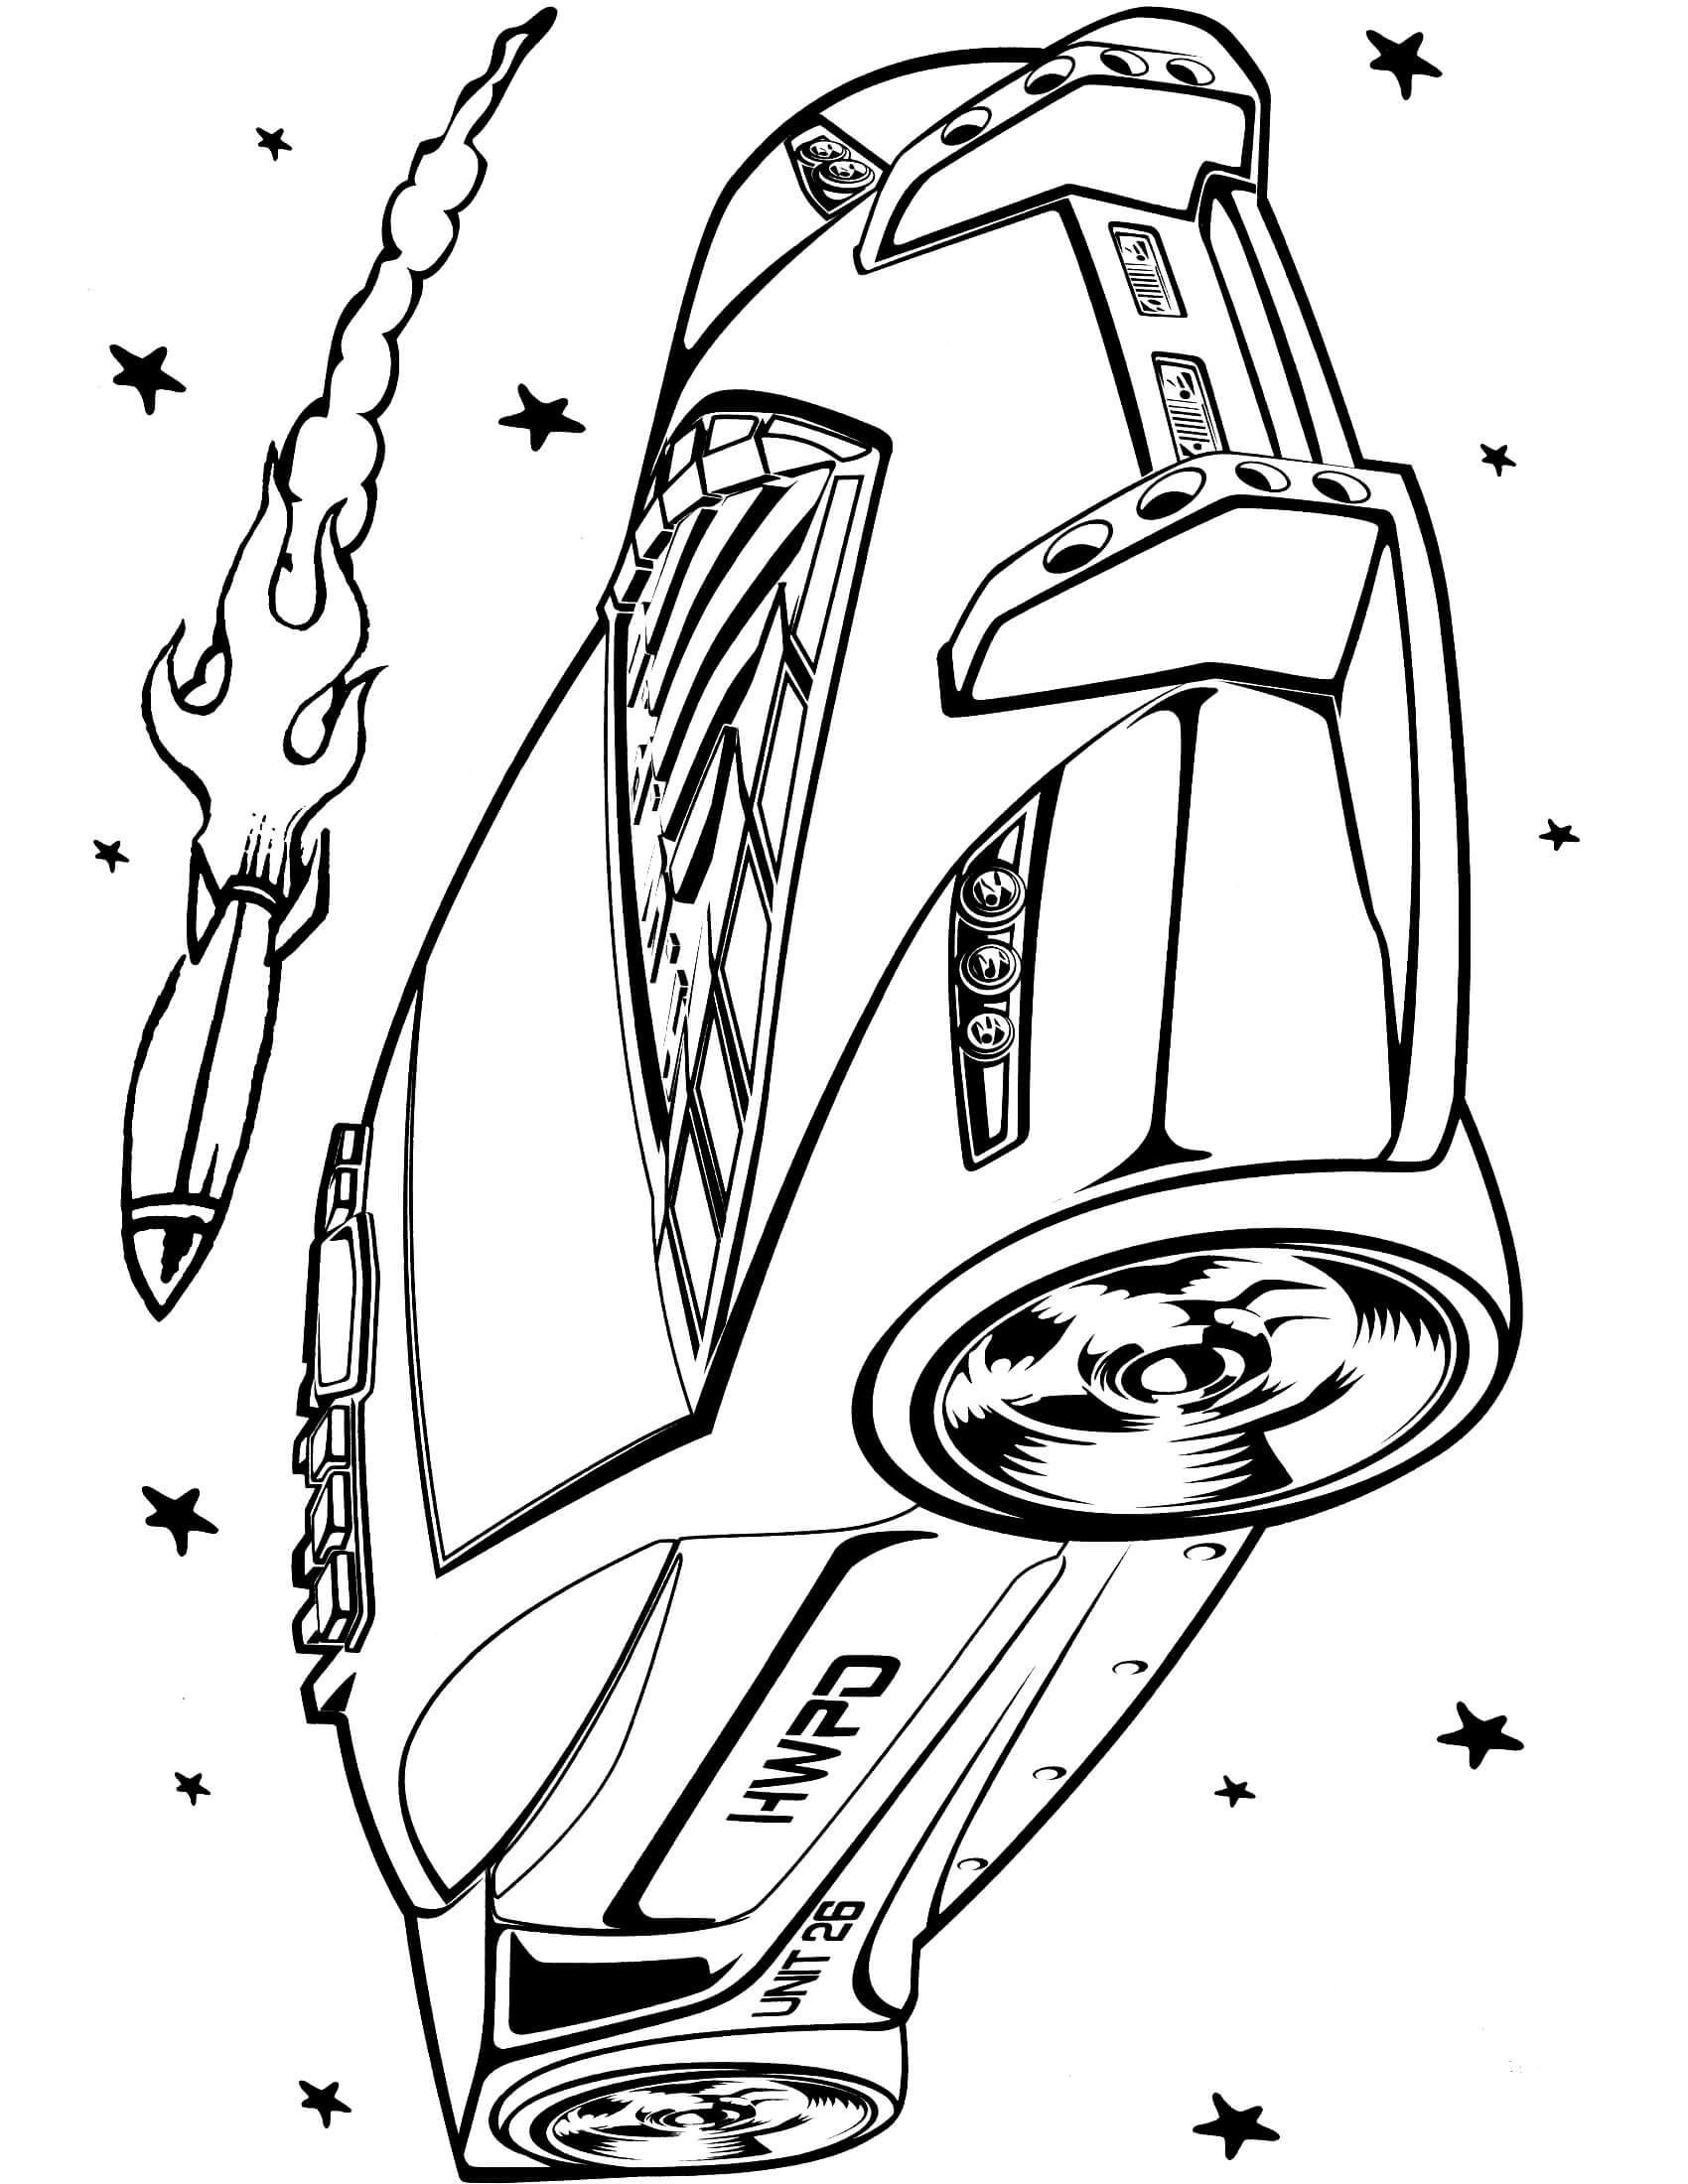 hotwheels coloring pages hotwheels coloring pages coloring hotwheels pages